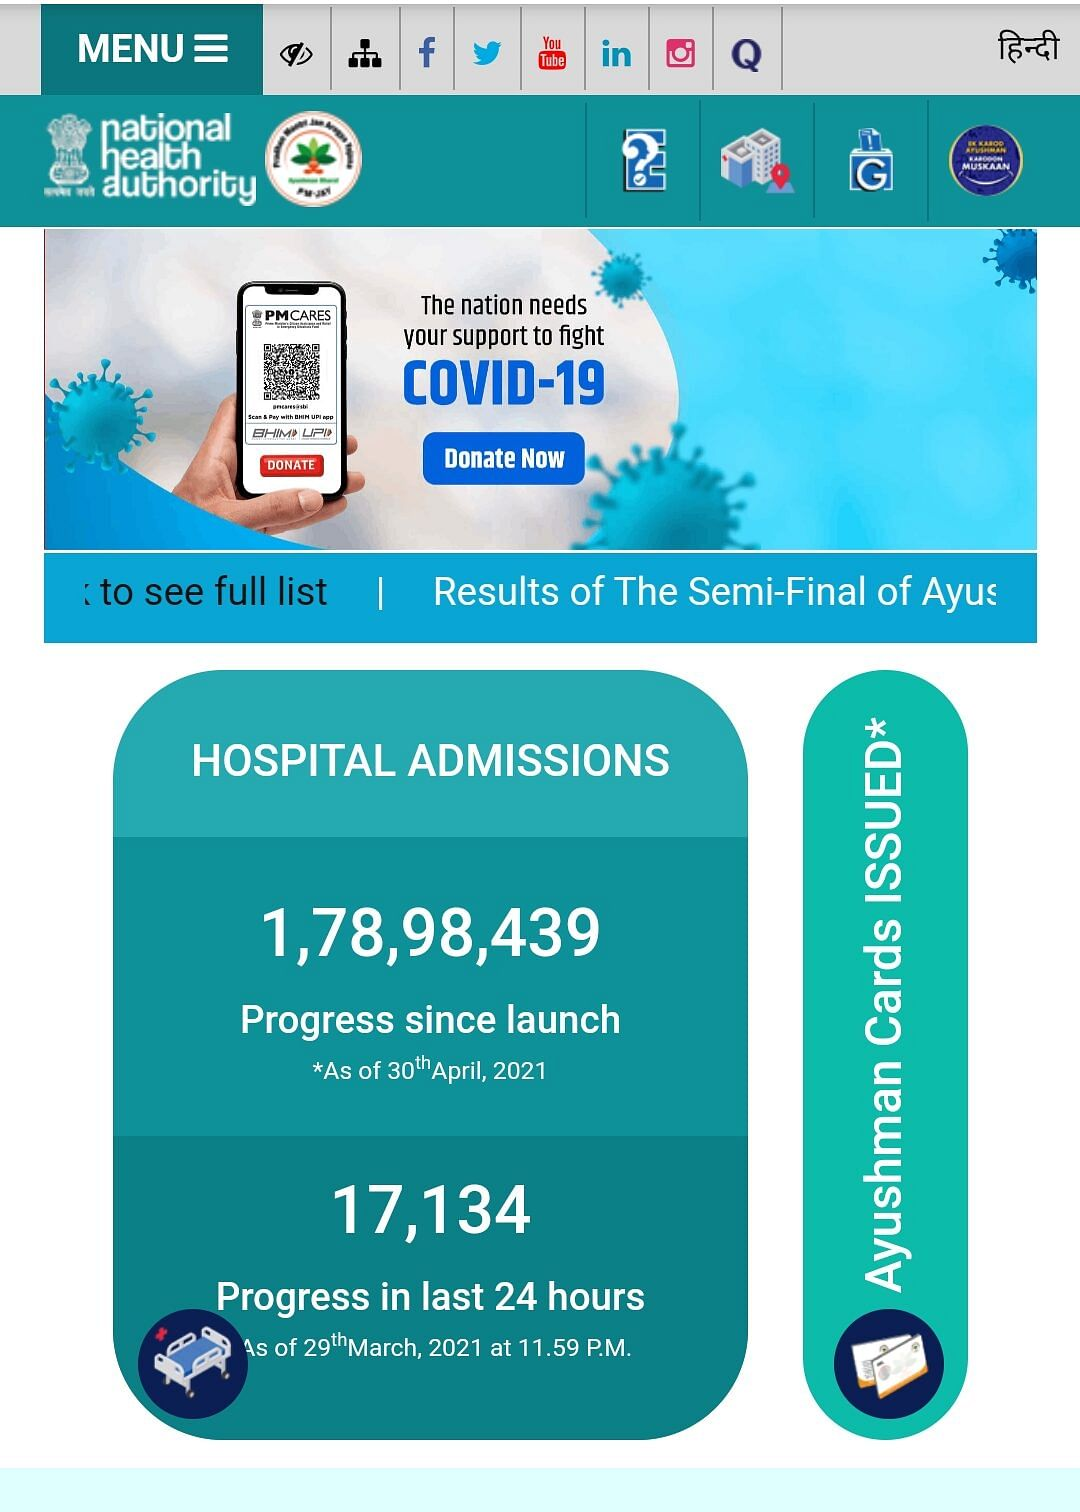 Amid COVID-19, pendency of health cards creates problems for patients